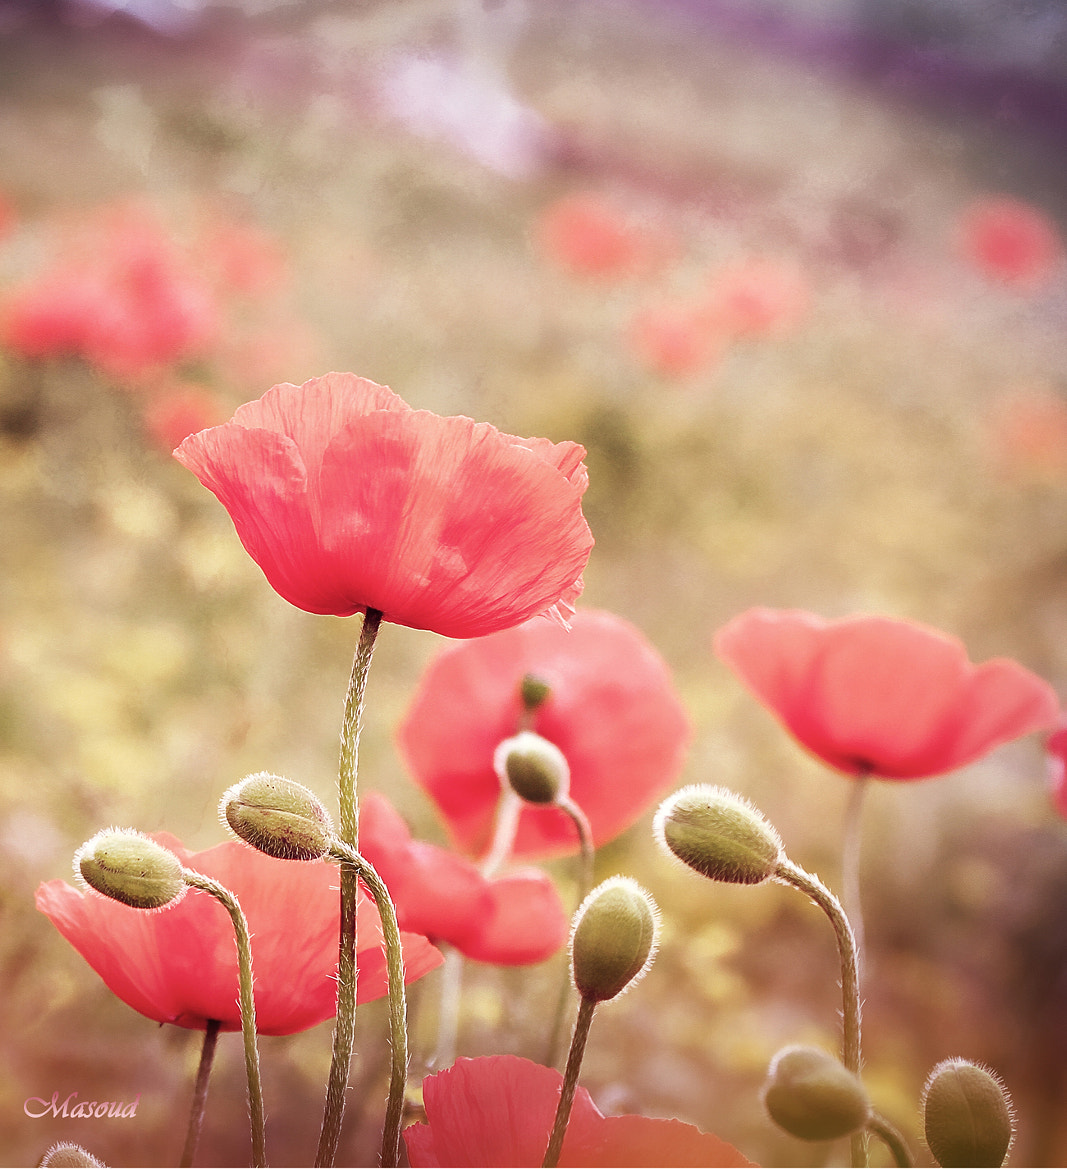 Photograph Flower by MasouD Aghalimi on 500px